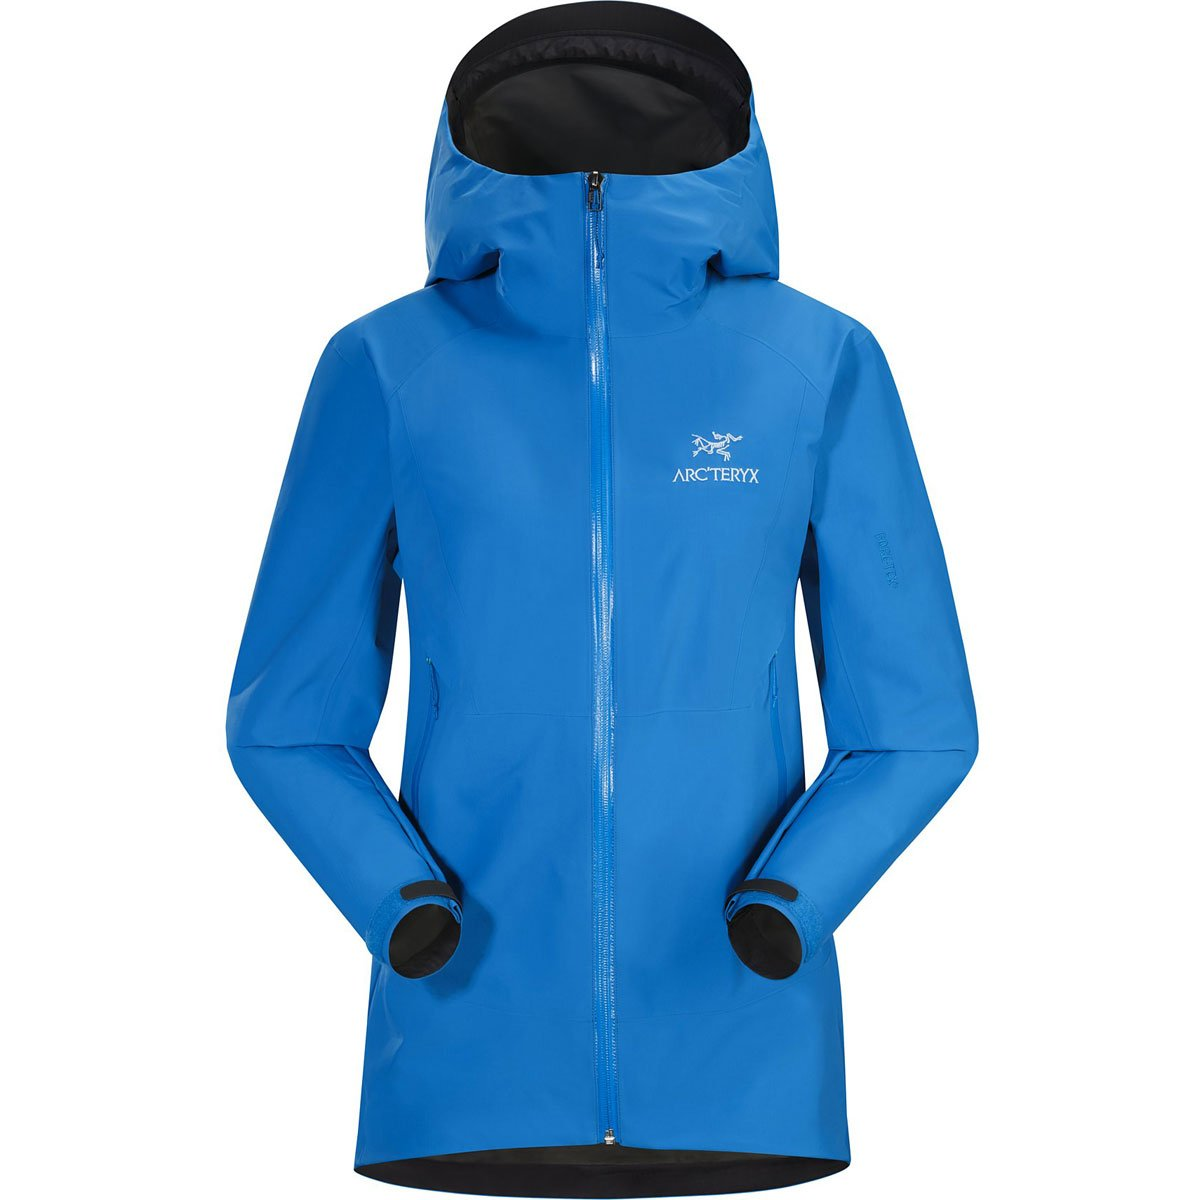 ARC'TERYX Beta SL Jacket Women's (Macaw, Medium)